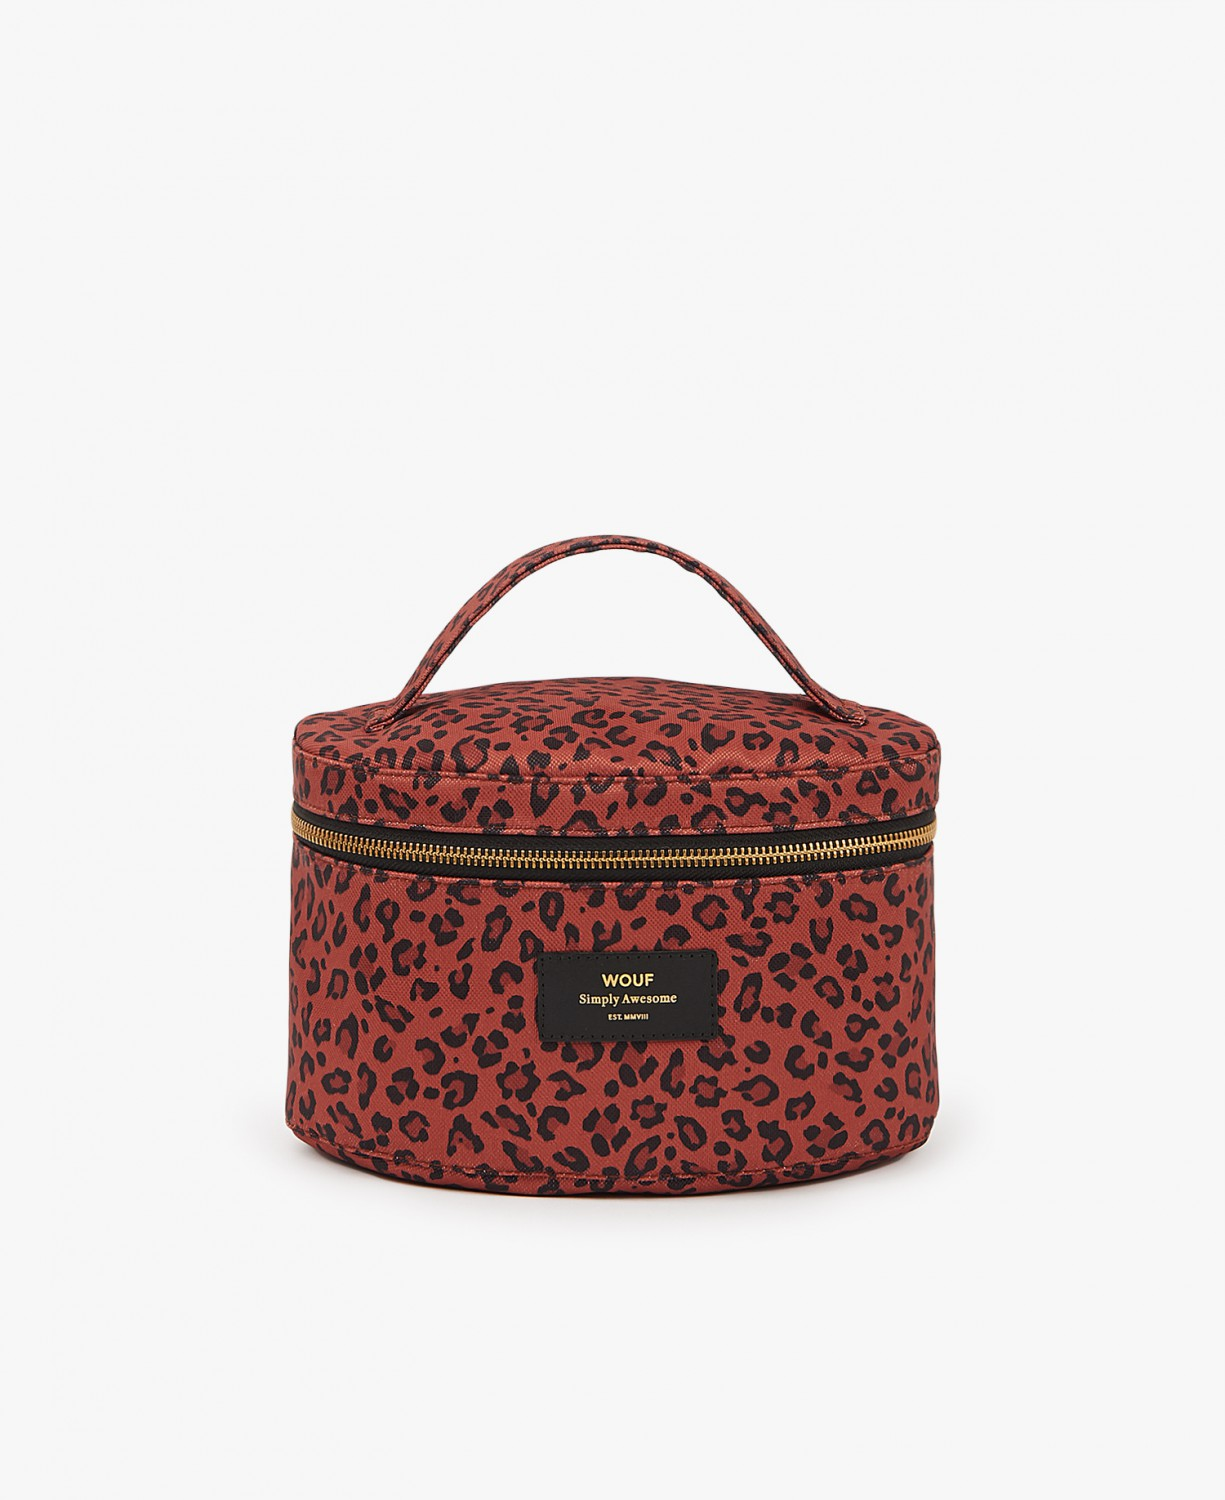 WOUF | Savannah makeup bag XL